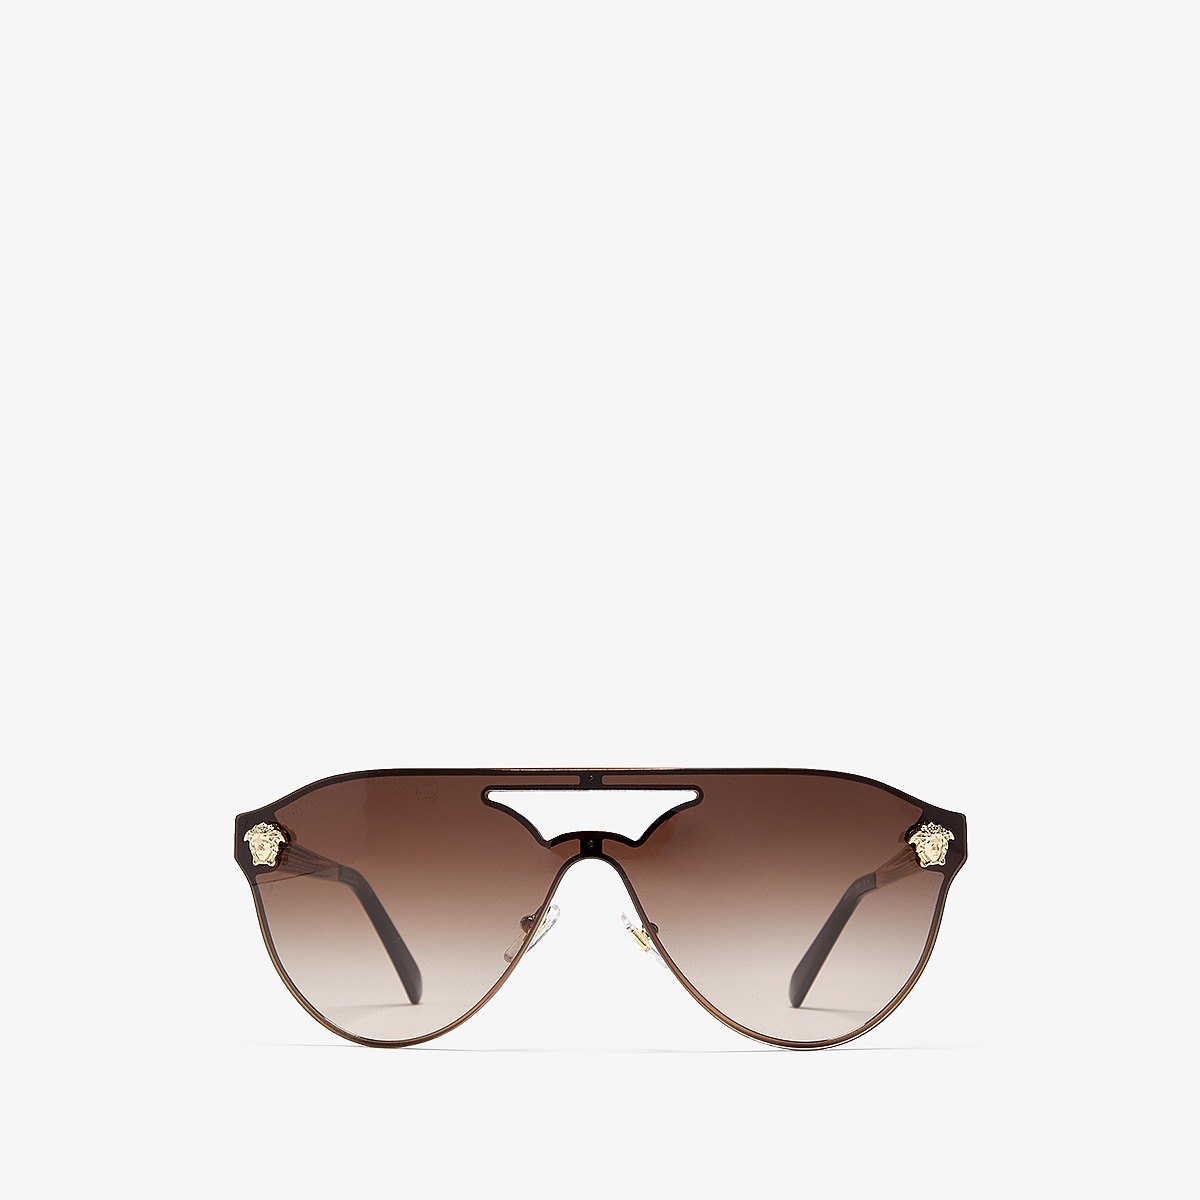 Versace - VE2161 (Pale Gold/Brown Gradient) Fashion Sunglasses